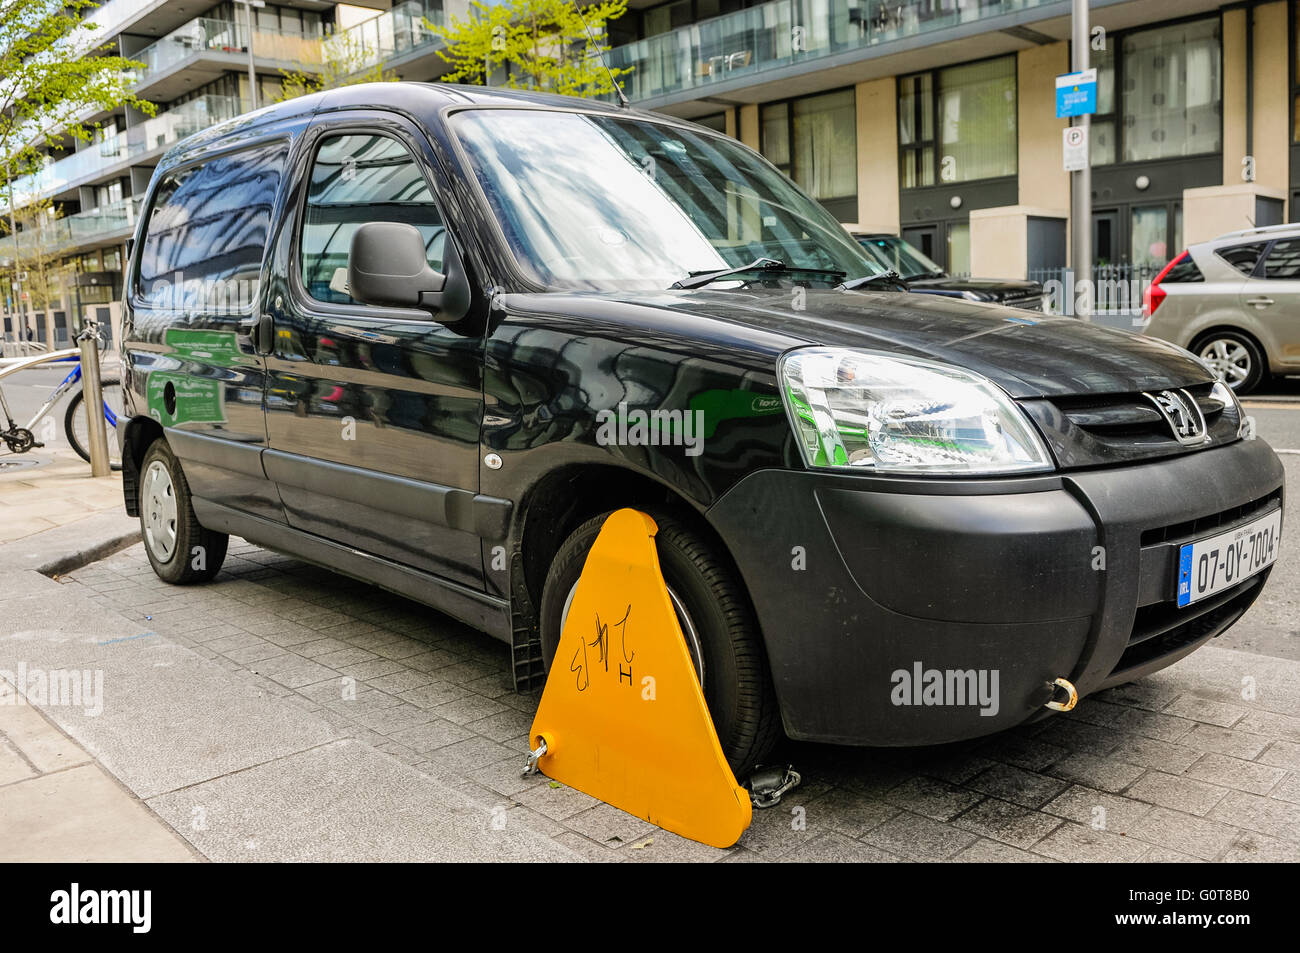 Yellow parking clamp attached to a Peugeot car/van in Dublin after it was parked illegally. - Stock Image